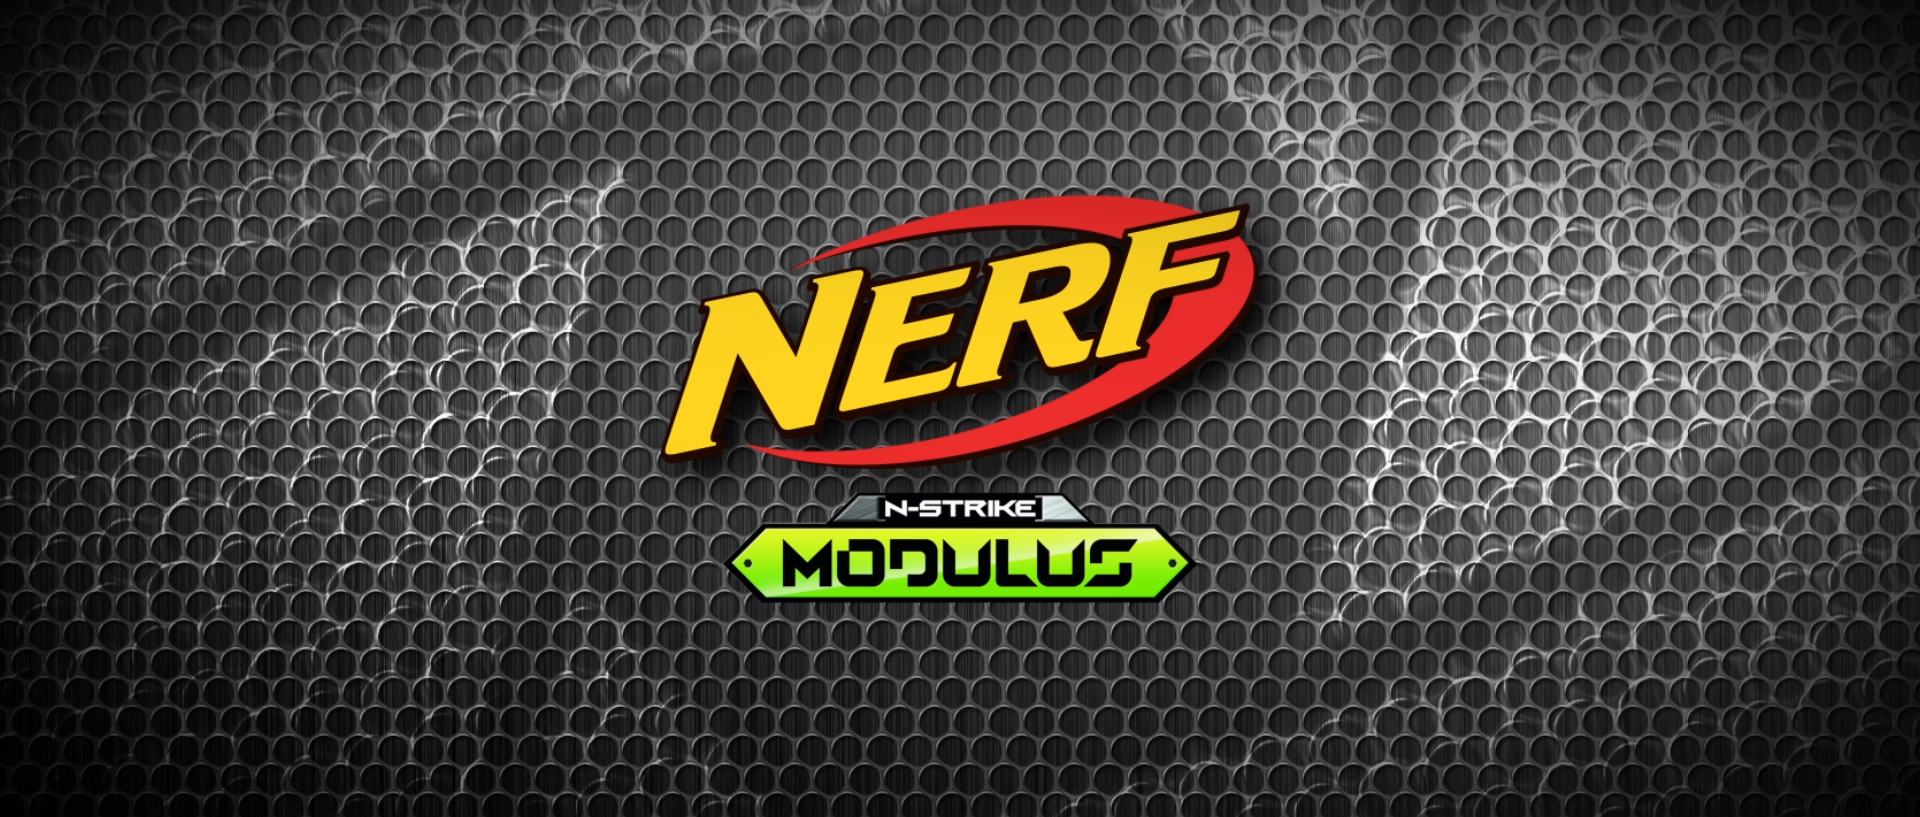 EXPLORATION: NErf End Tag